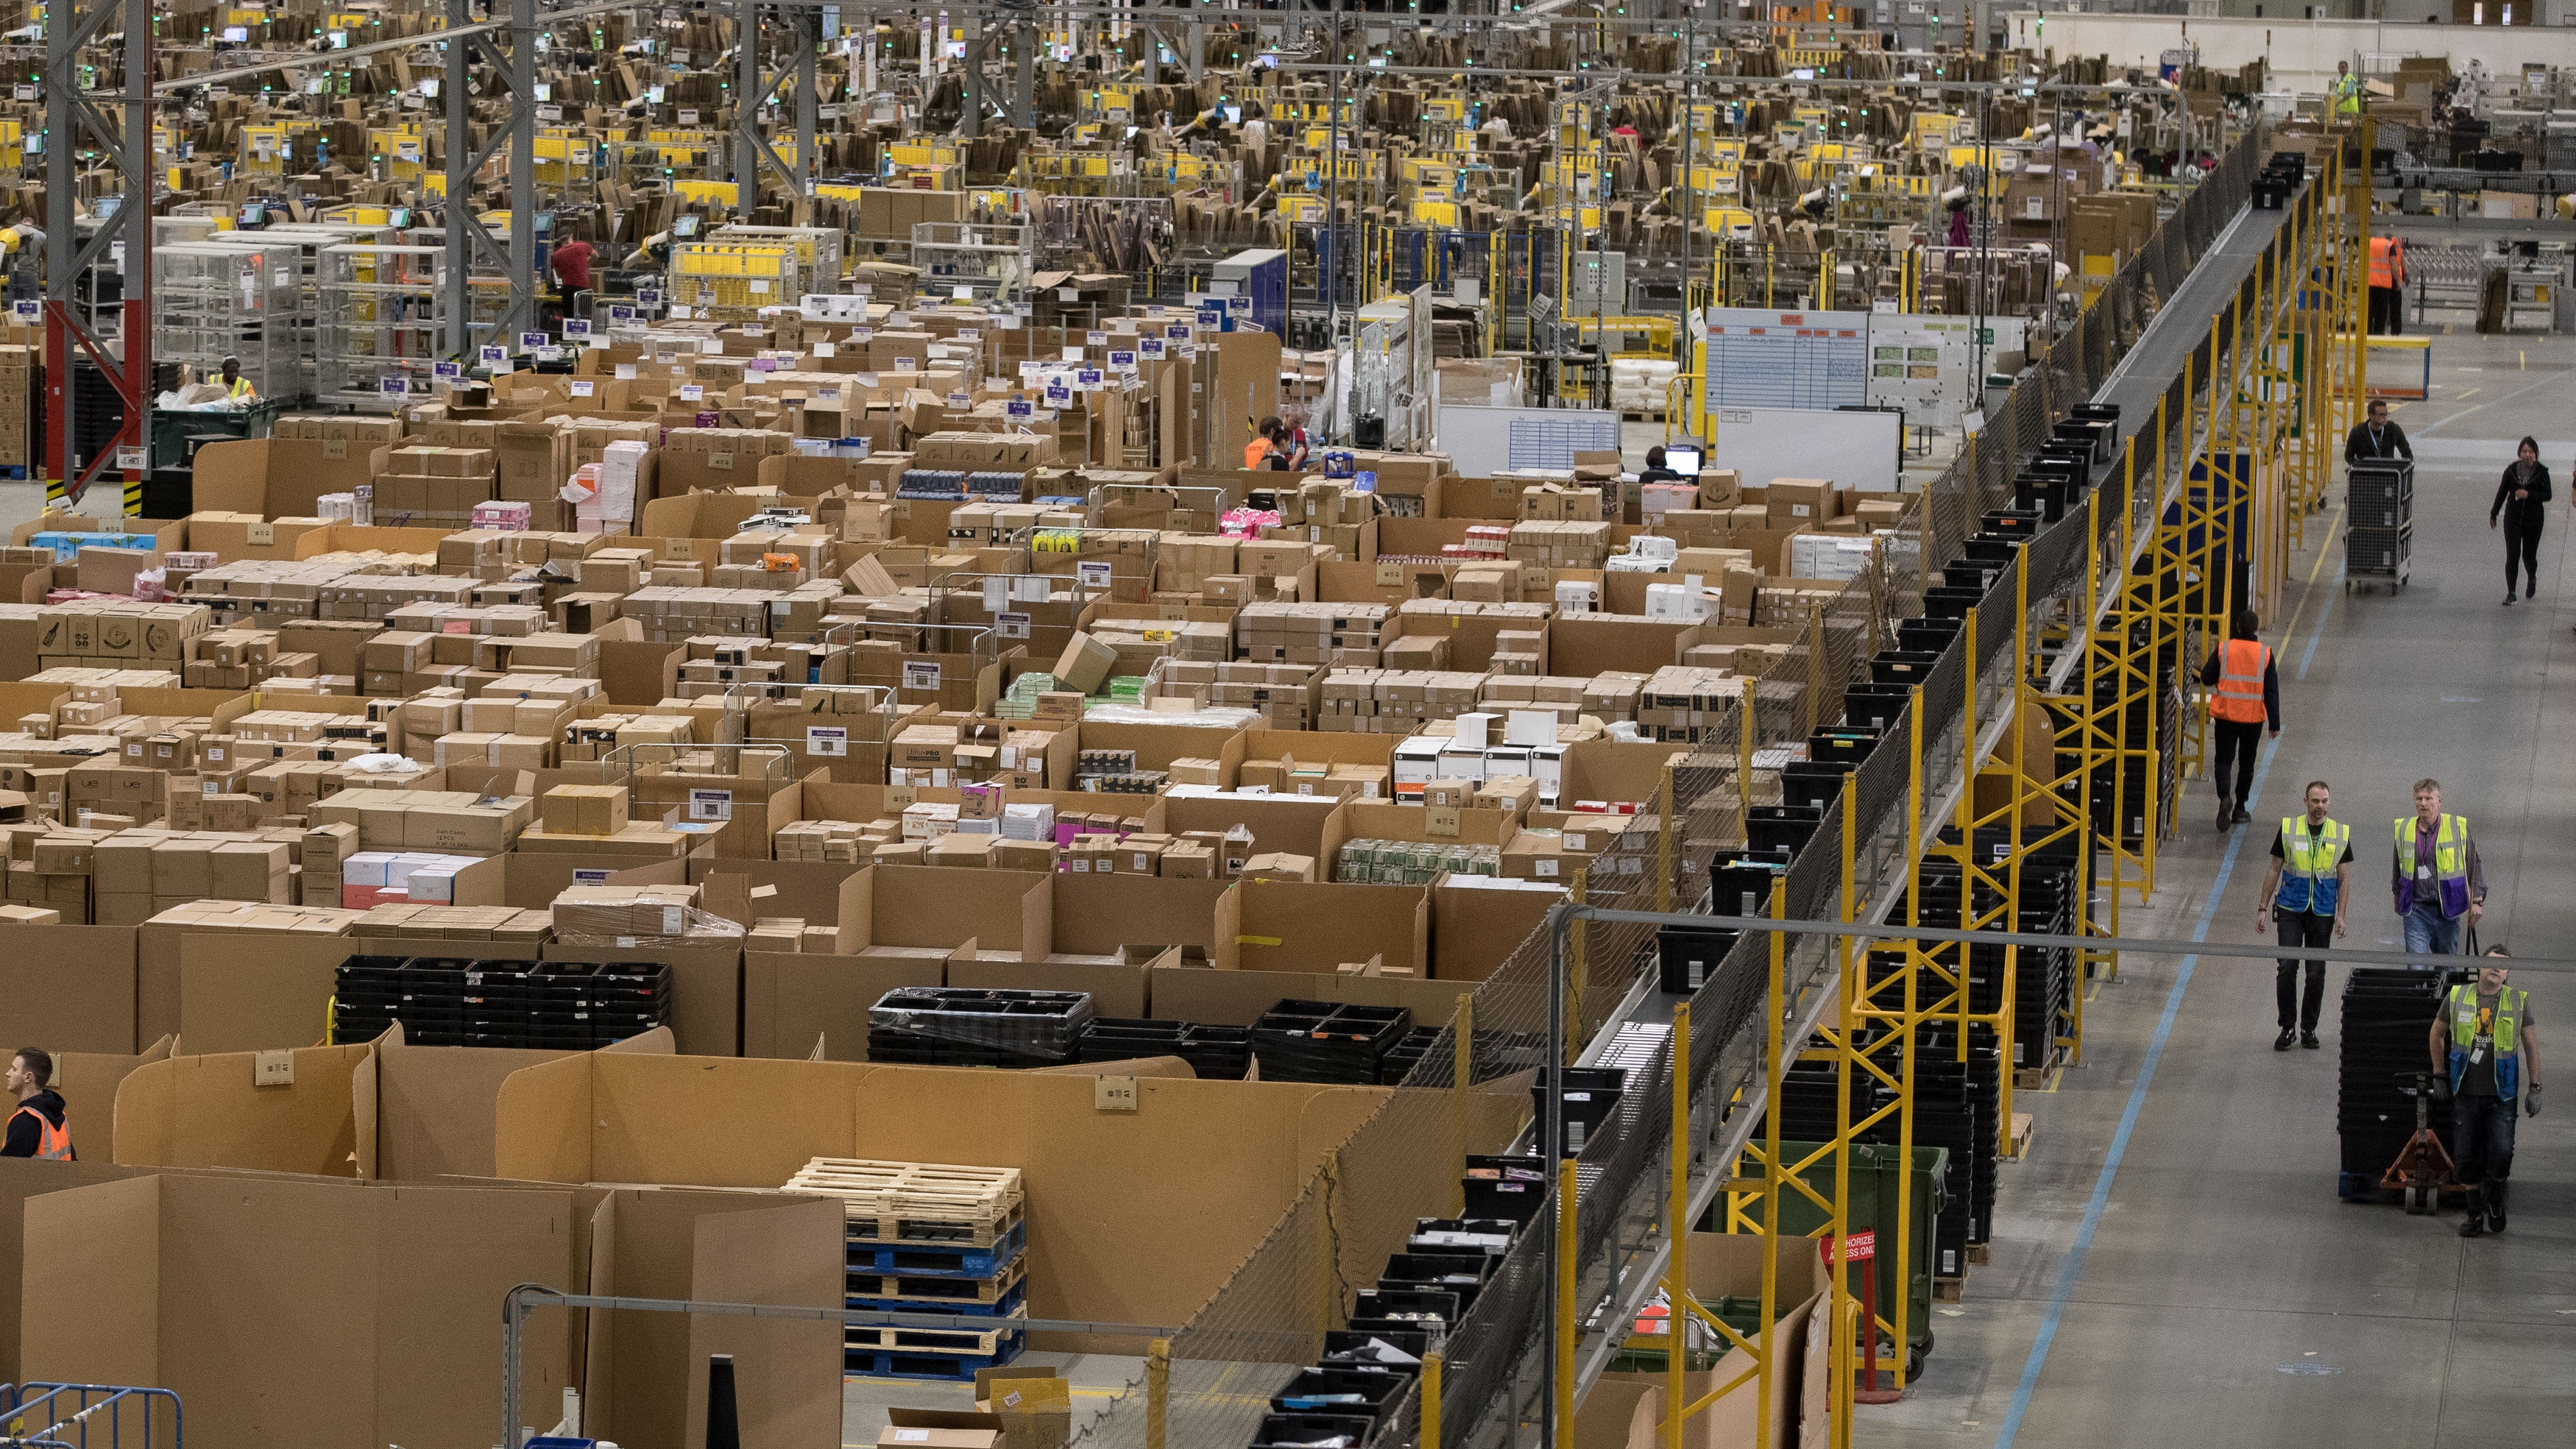 Amazon will launch its own delivery service to compete with FedEx, UPS